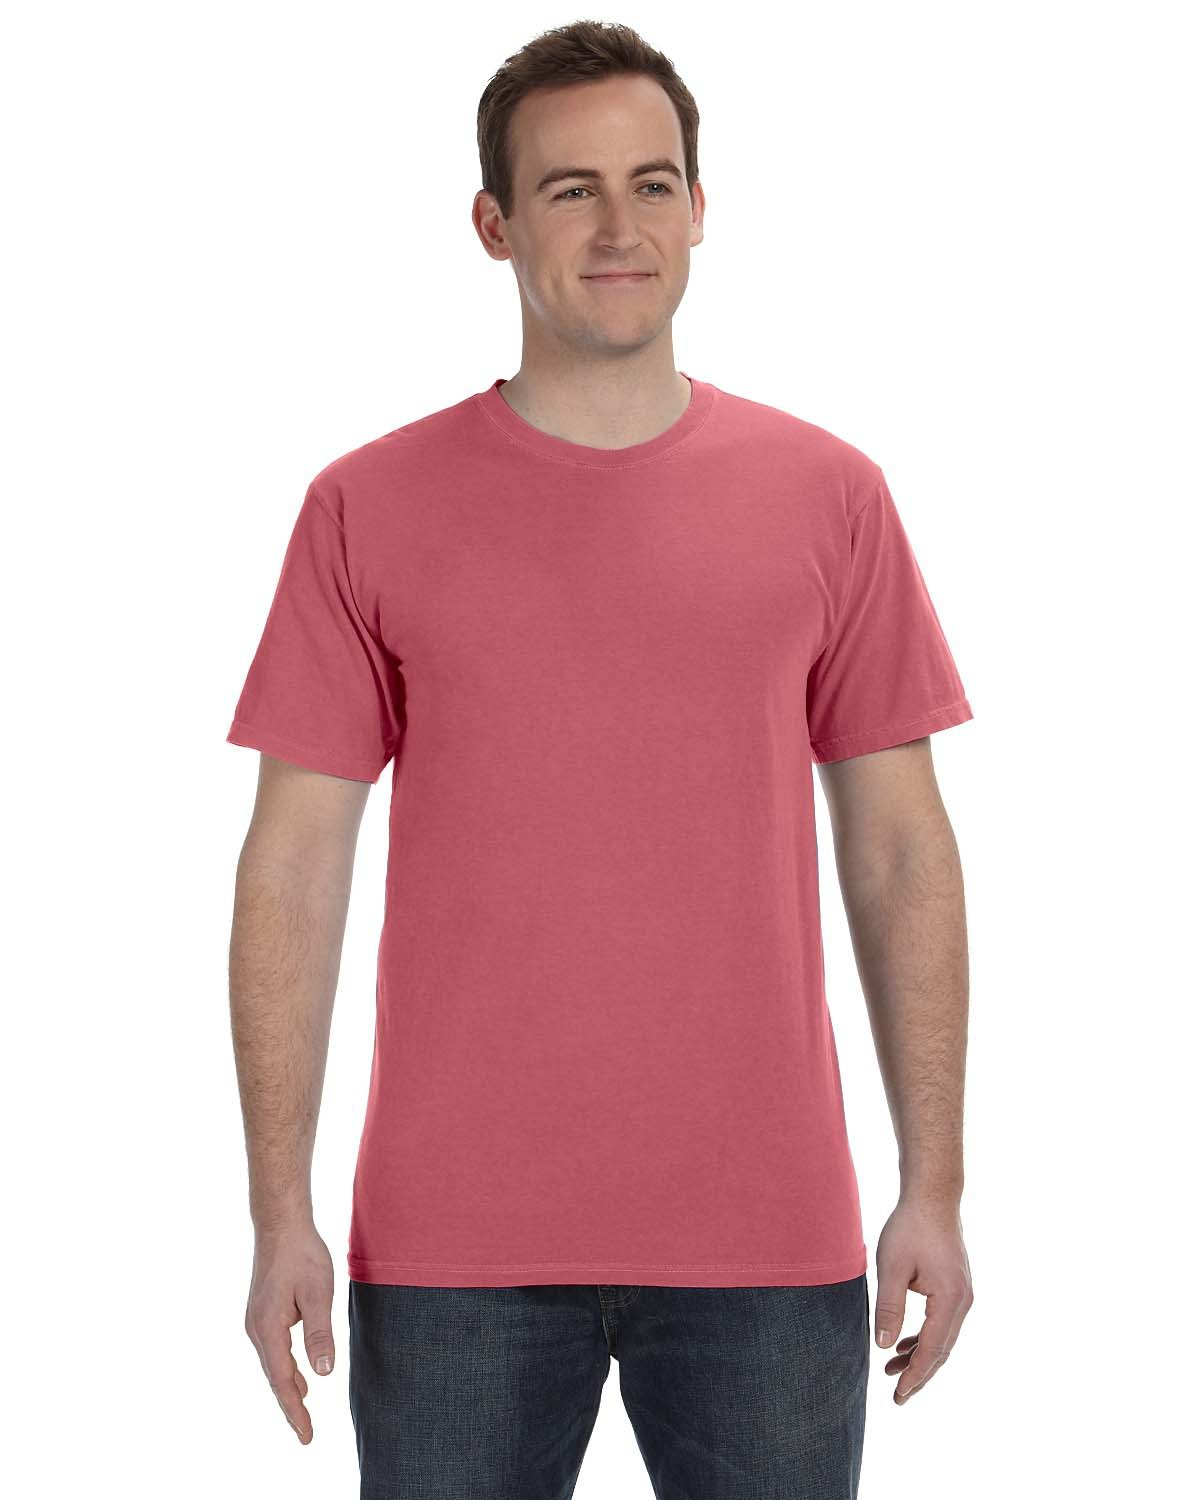 Authentic Pigment 5.6 oz. Pigment-Dyed & Direct-Dyed Ringspun T-Shirt NAUTICAL RED